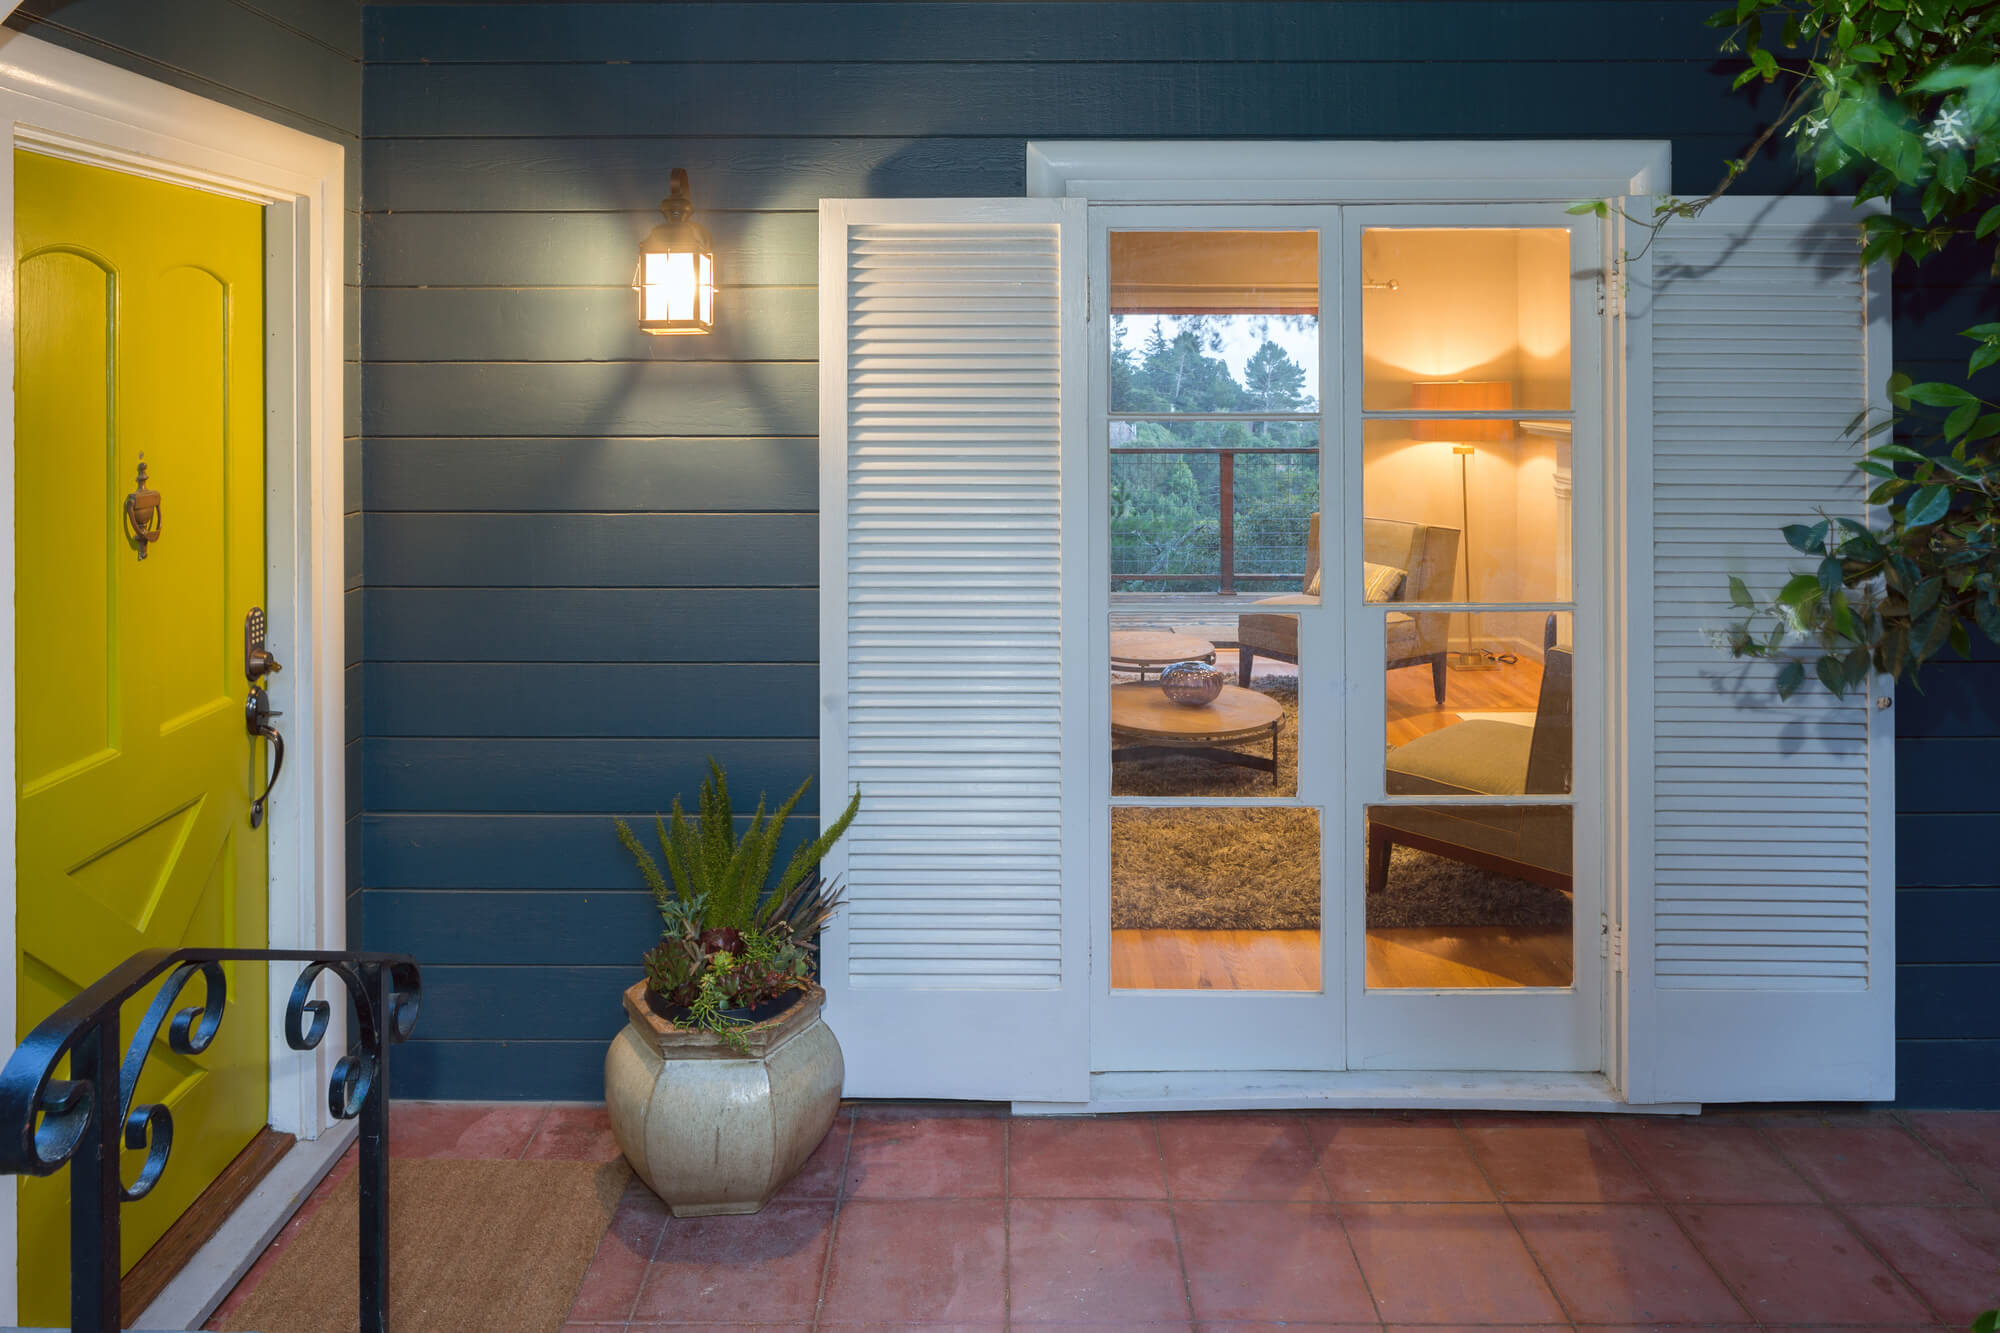 4 Tips For Choosing the Right Style Window Shutters For Your Home, interior design